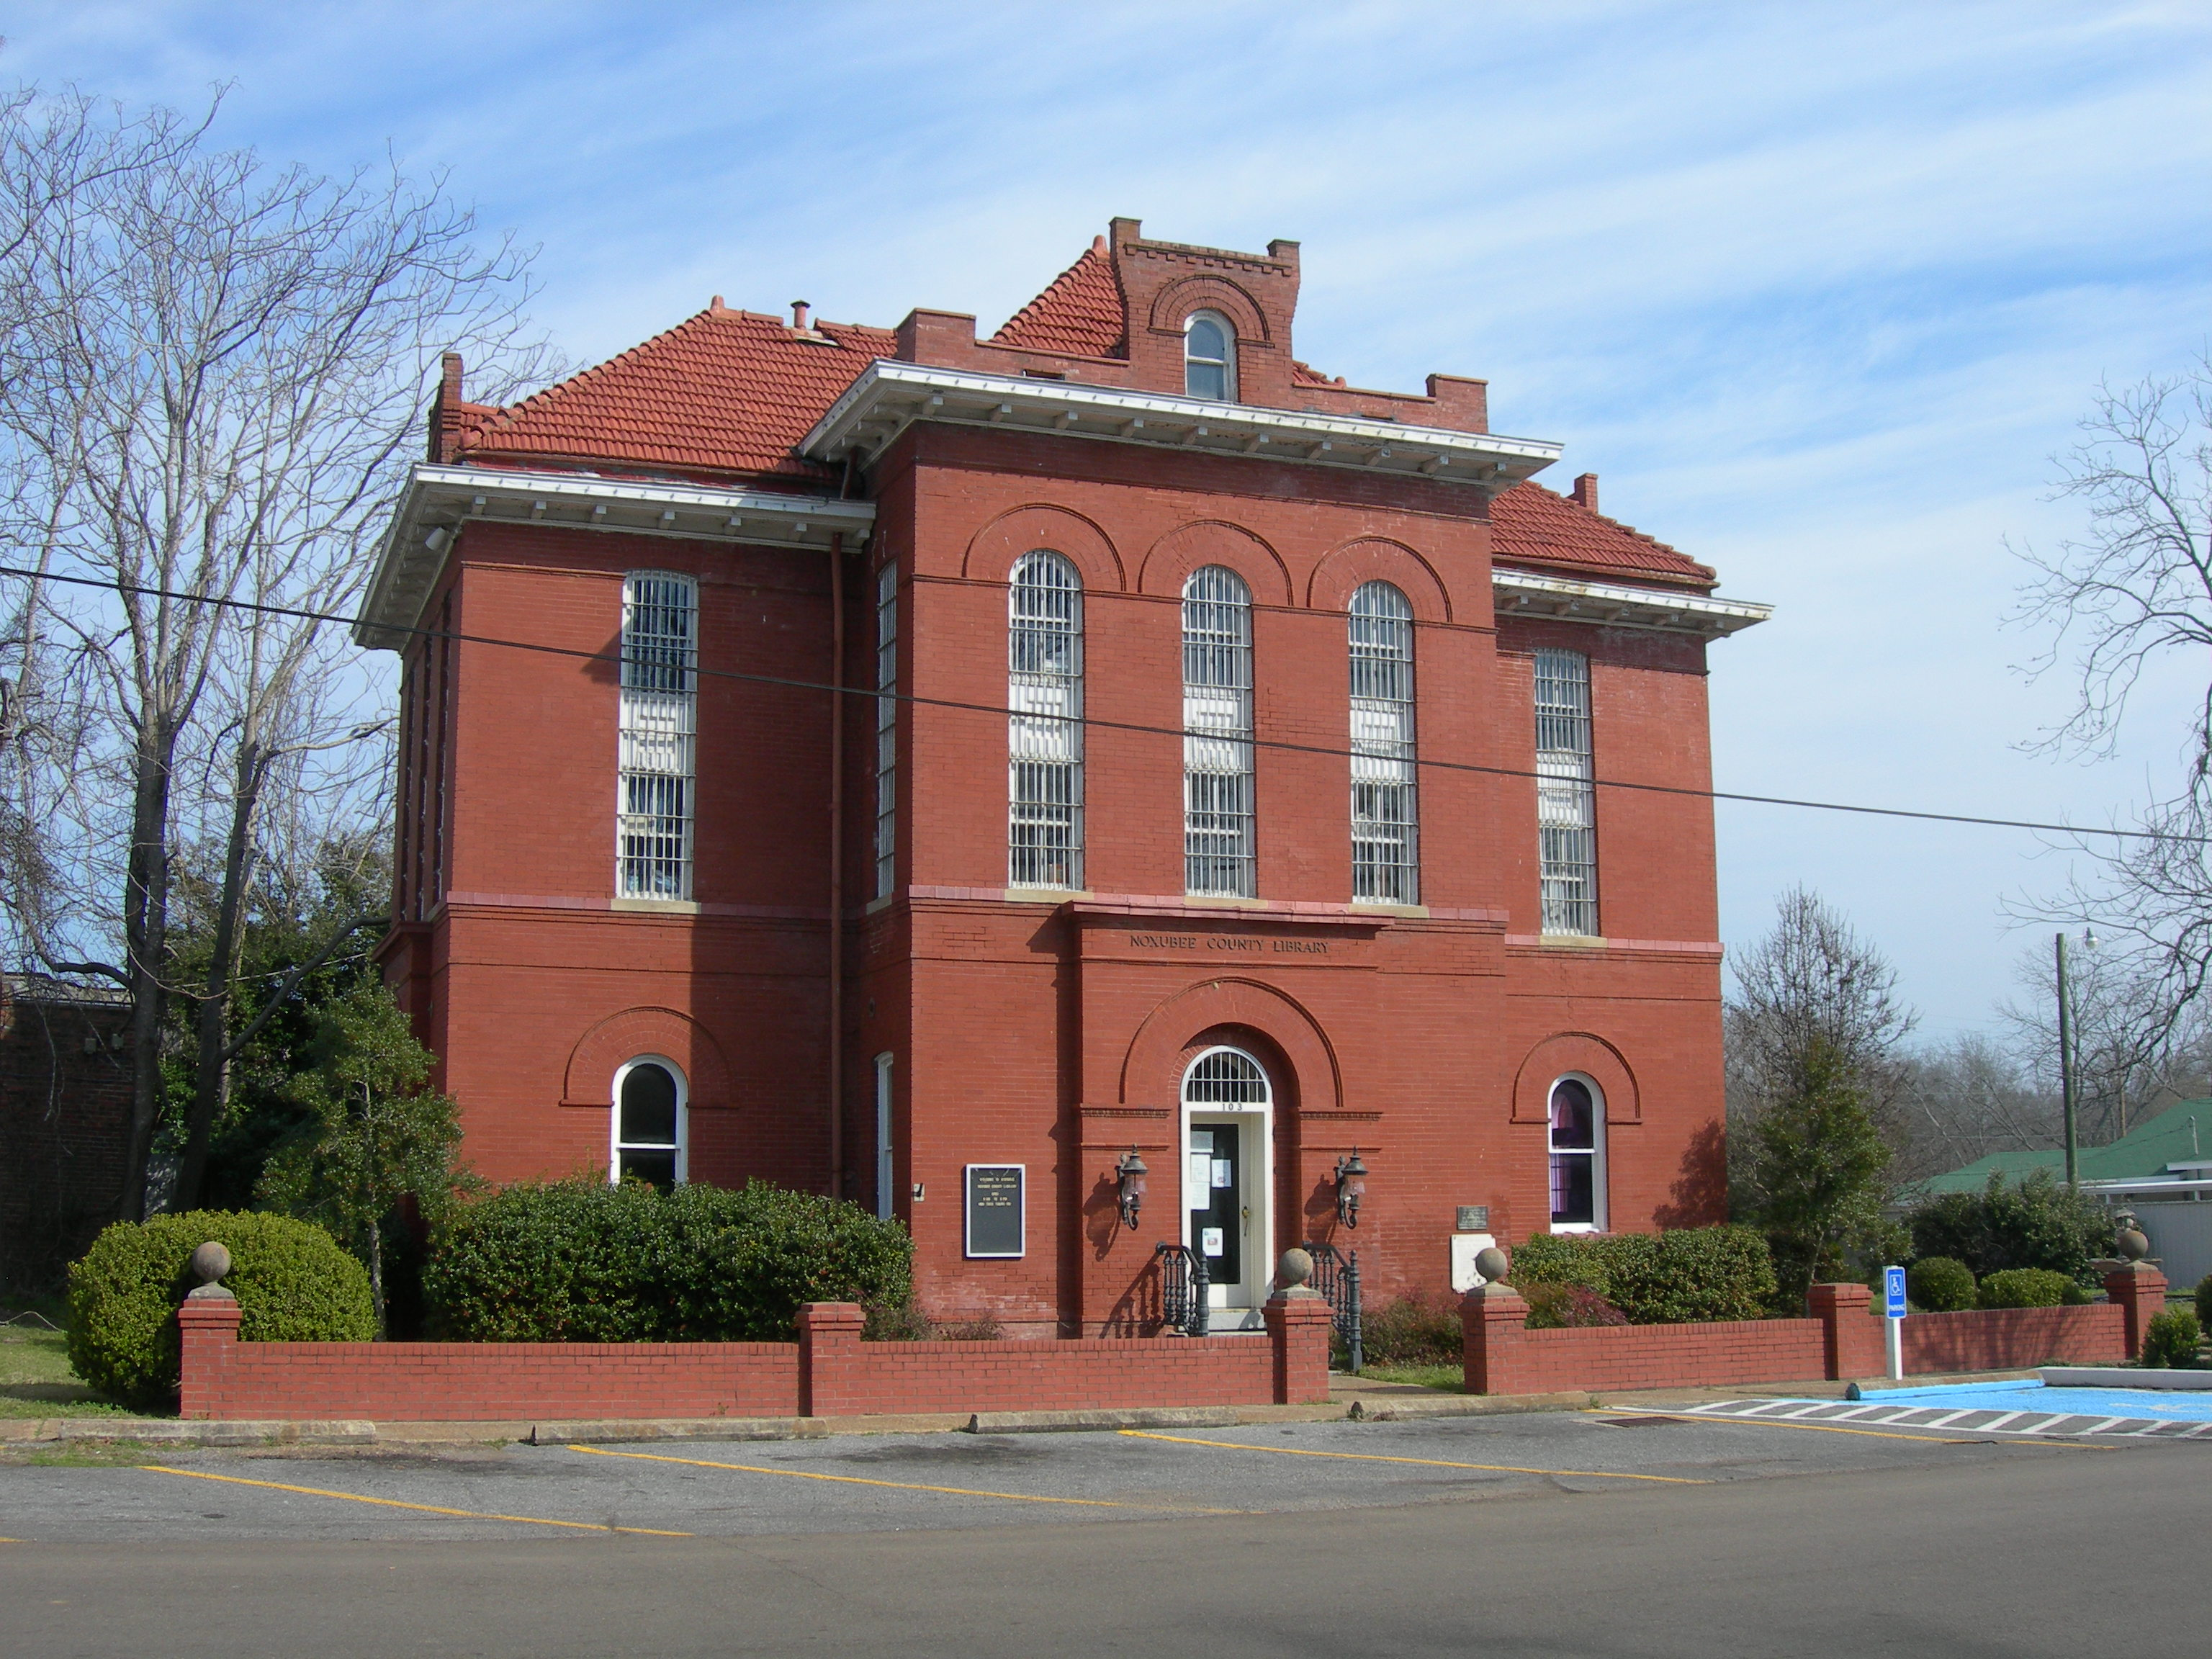 Macon Mississippi haunted Noxubee County Jail Public Library ghosts miraculous vision